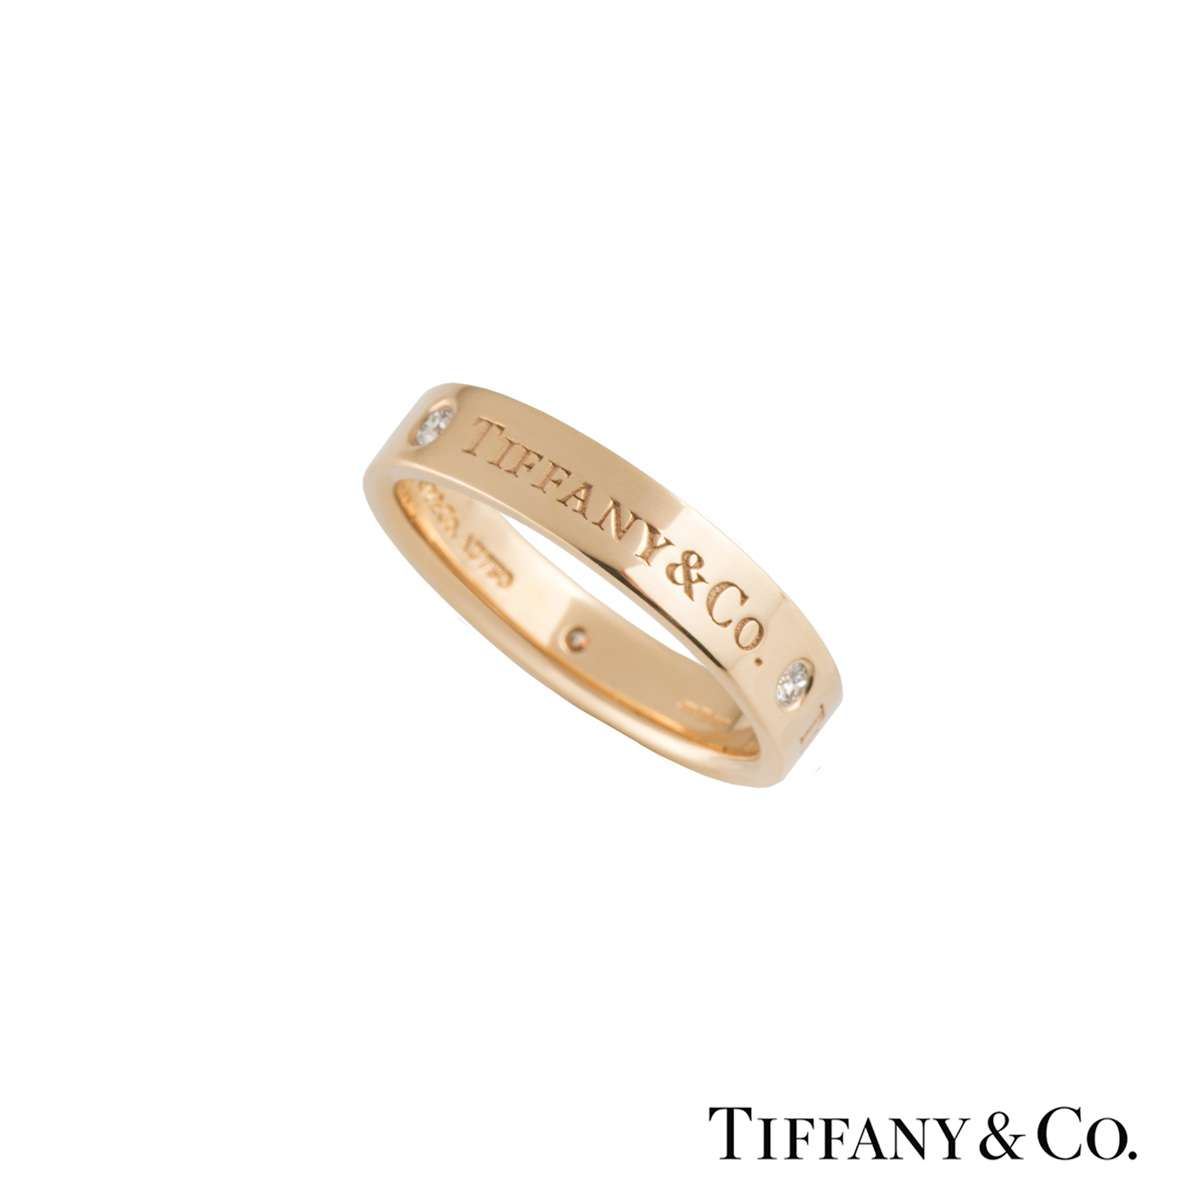 Tiffany & Co. Rose Gold and Diamond Band Ring